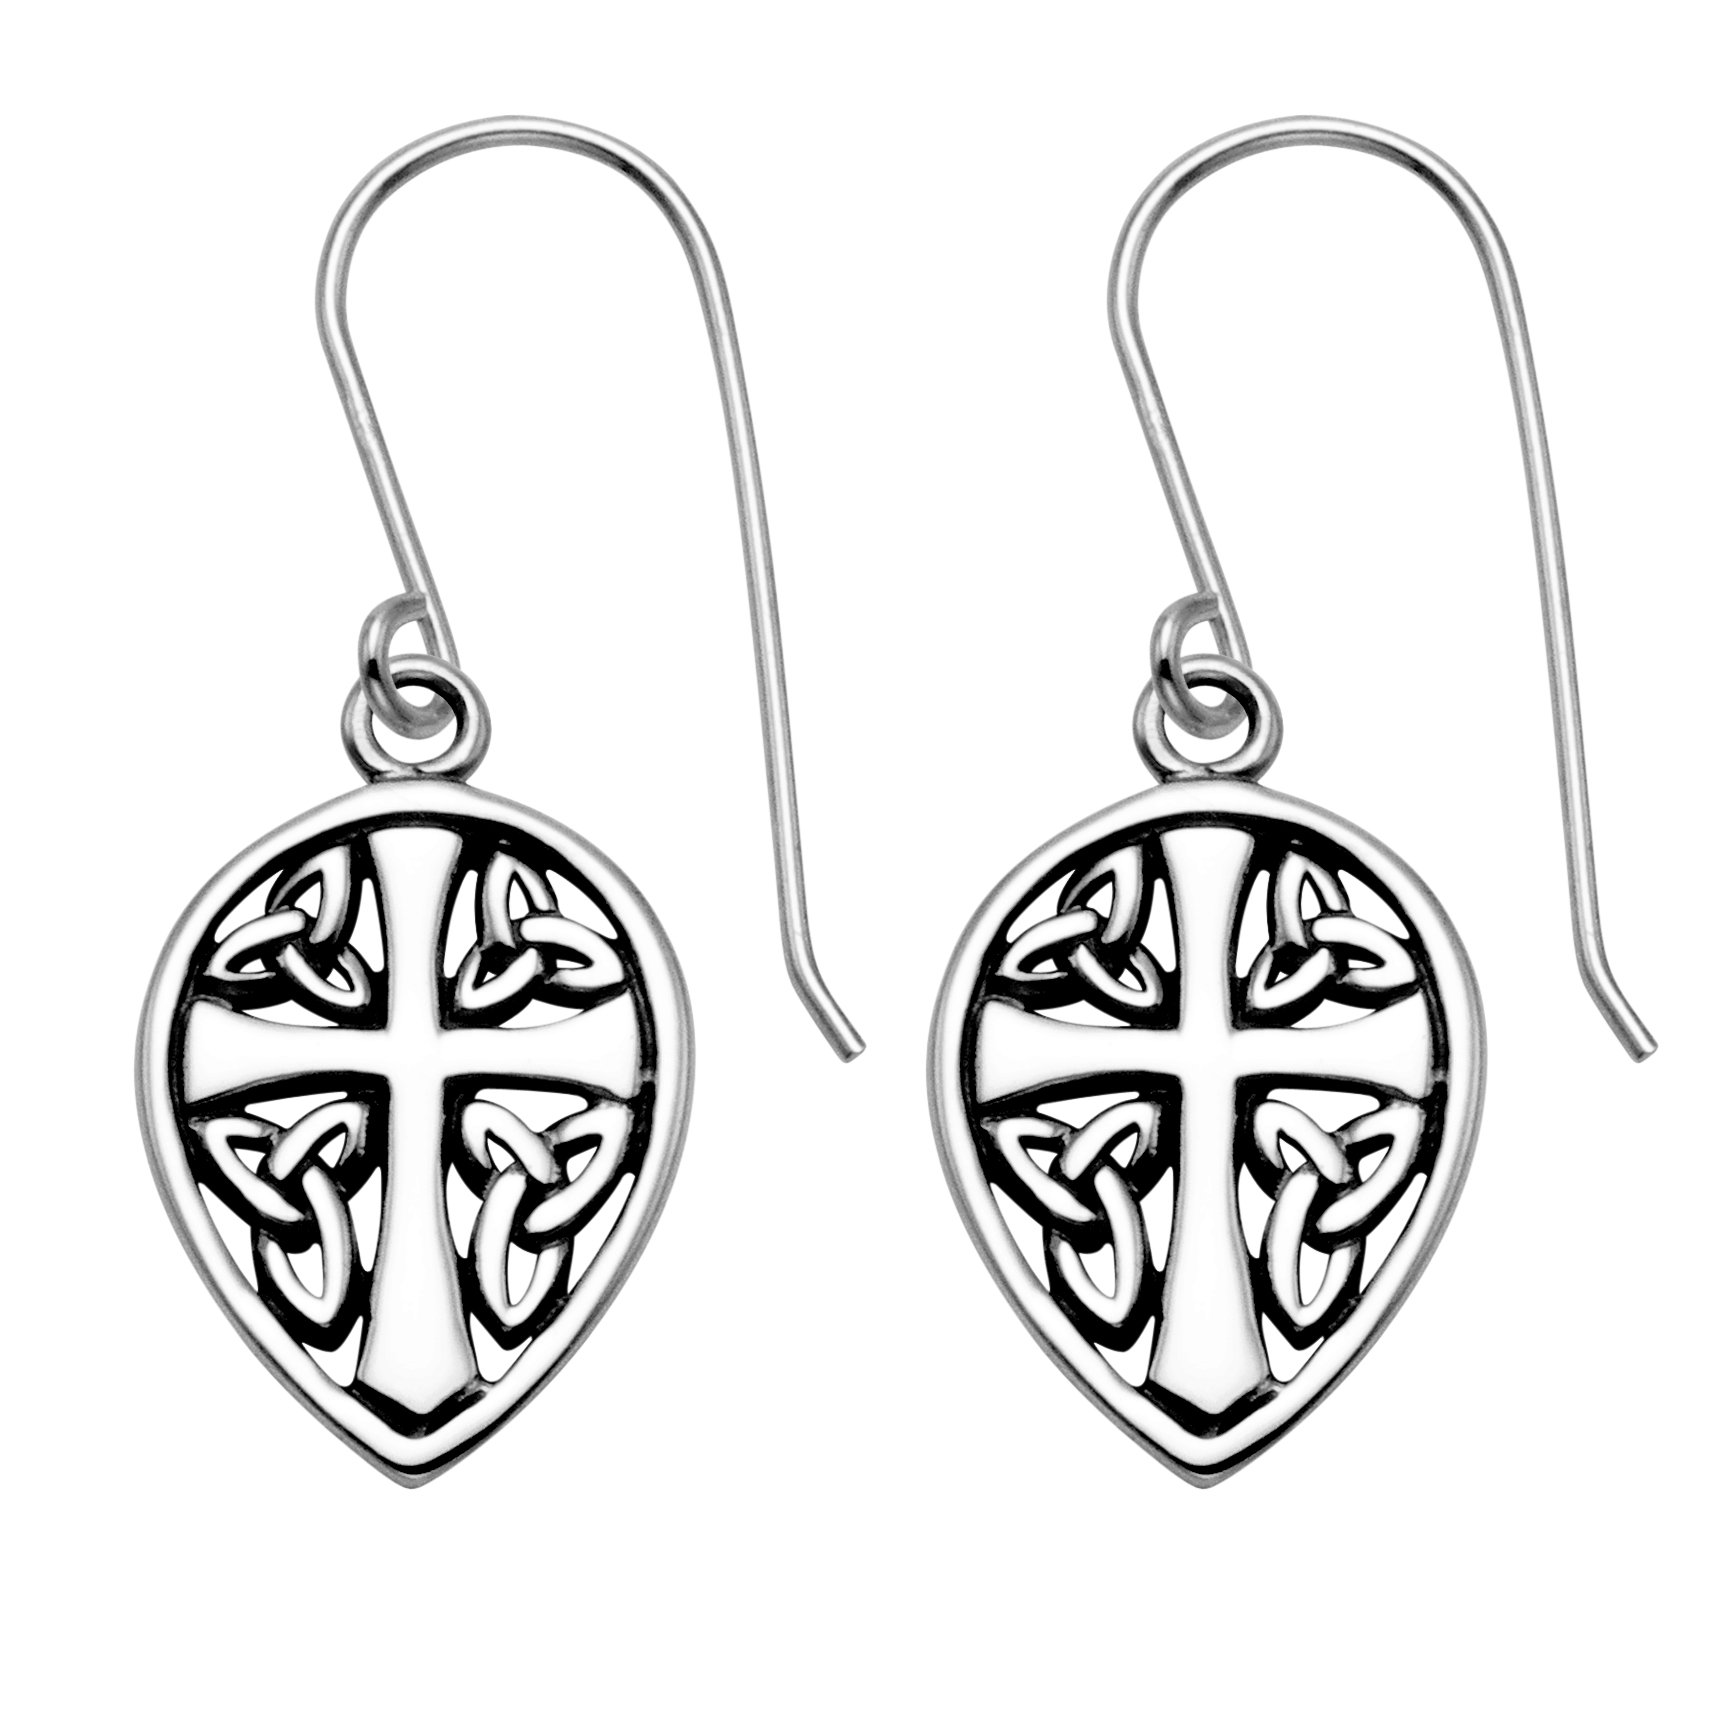 Sterling Silver Celtic Cross & Sheild Wire Earrings by Wild Things (Image #1)